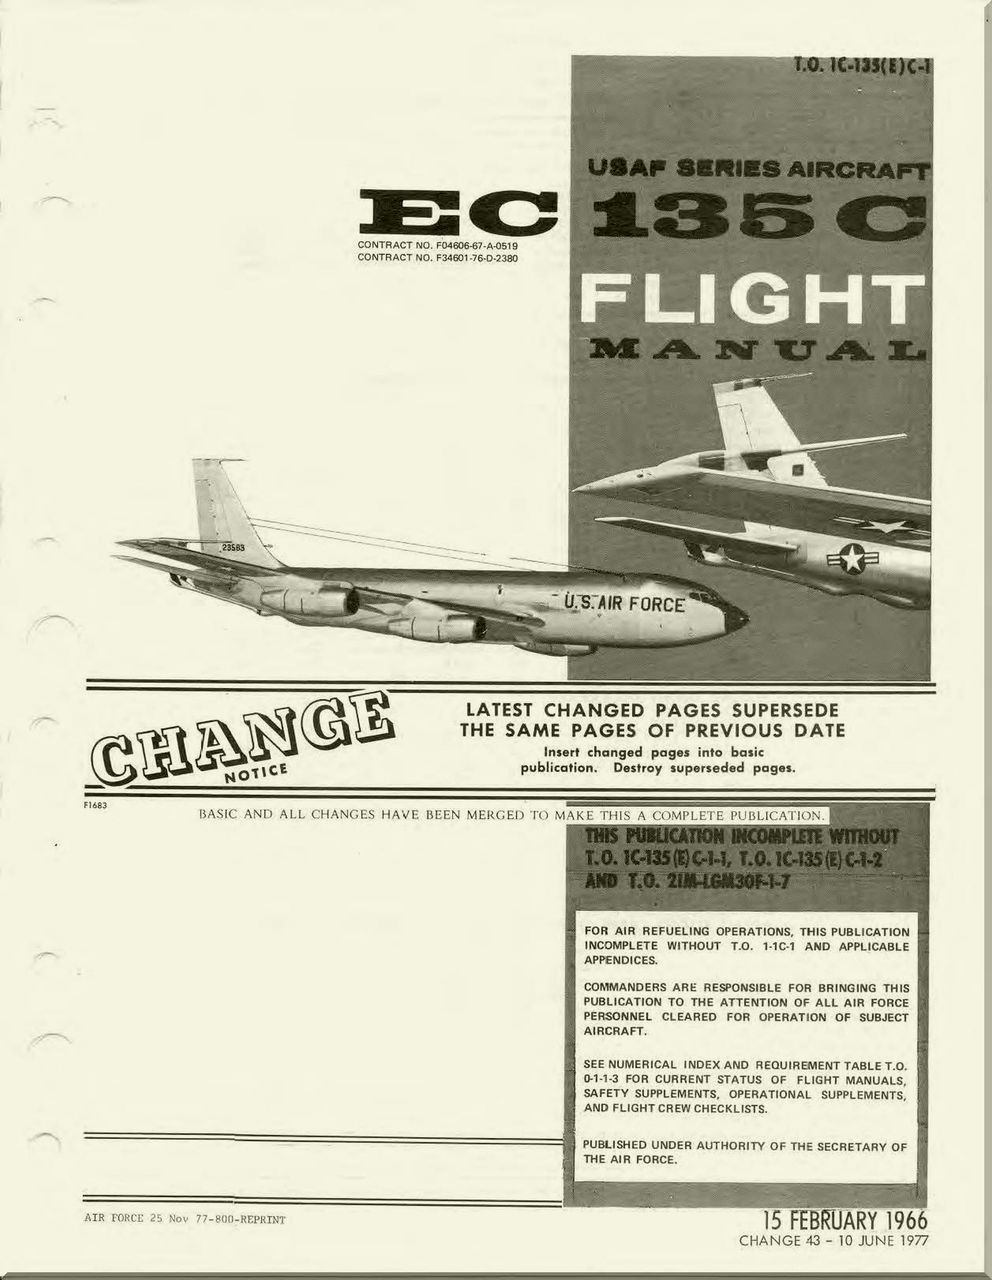 boeing ec 135c aircraft flight manual t o 1c 135 e c1 1966 rh pinterest com Boeing 737 John Travolta Boeing 707